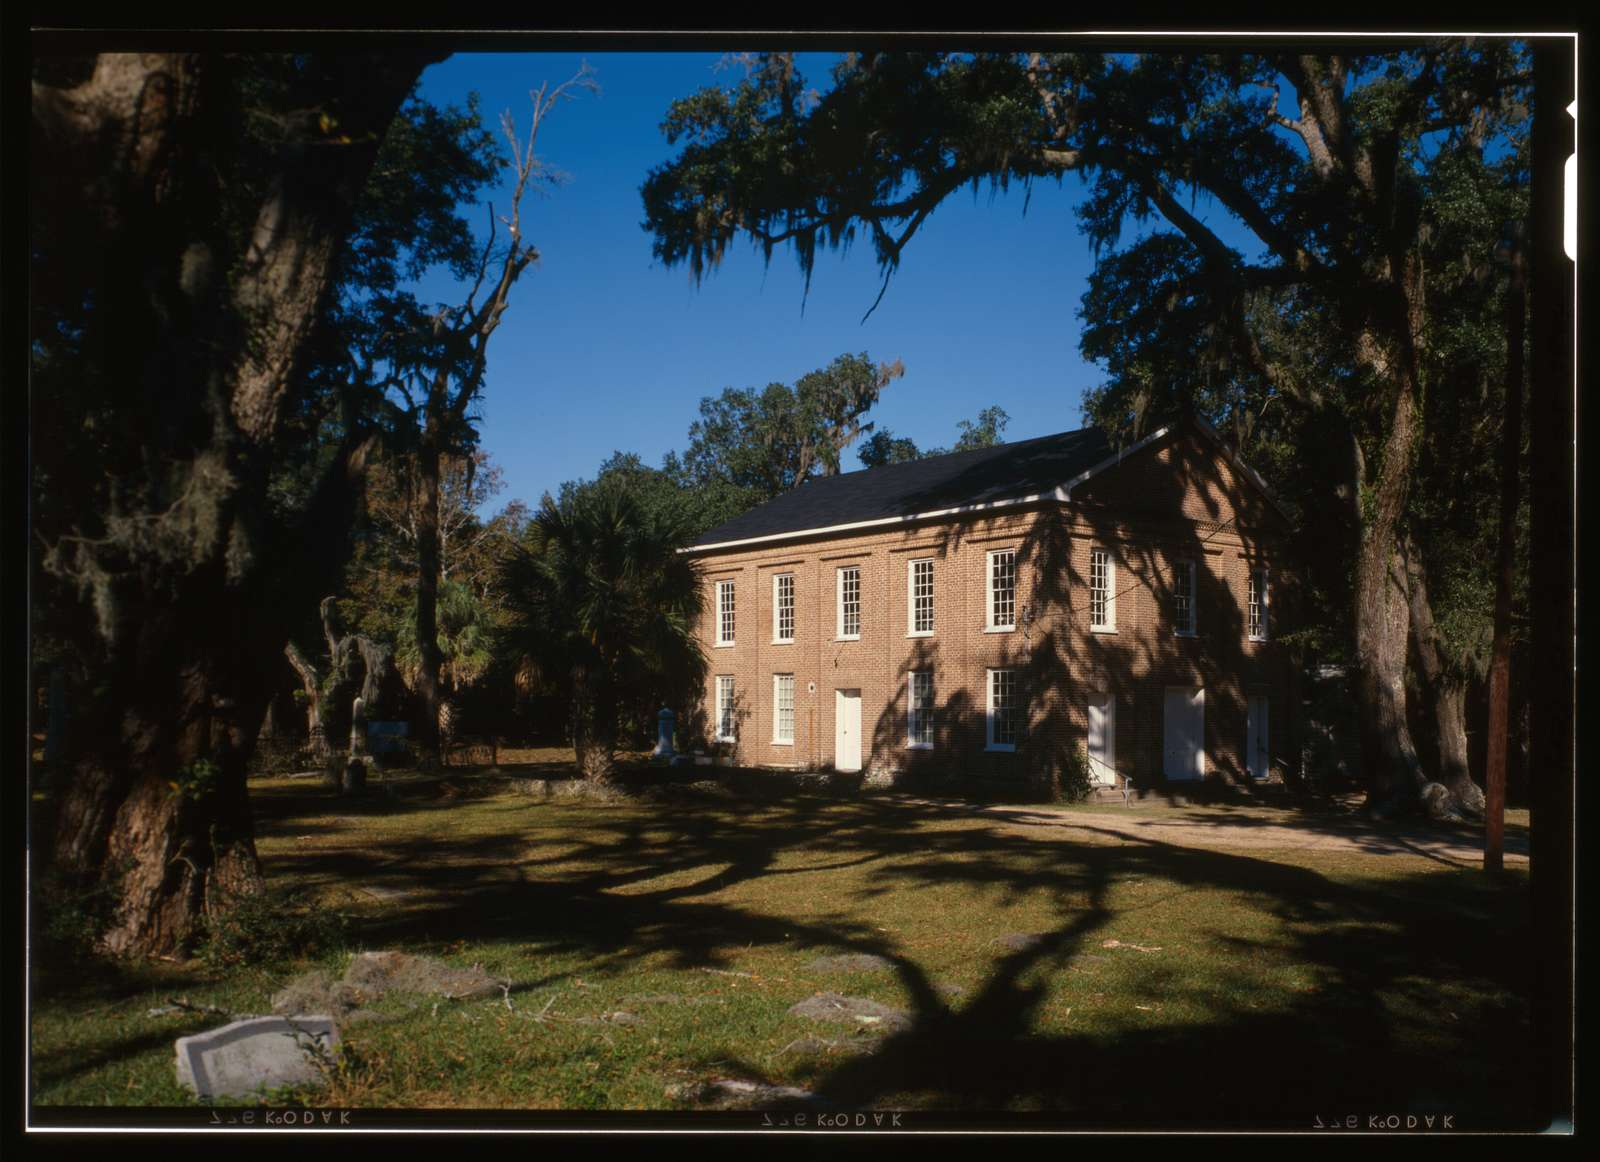 Penn School Historic District, Brick Church, SC Route 37, 1 mile South of Frogmore, St. Helena Island, Frogmore, Beaufort County, SC